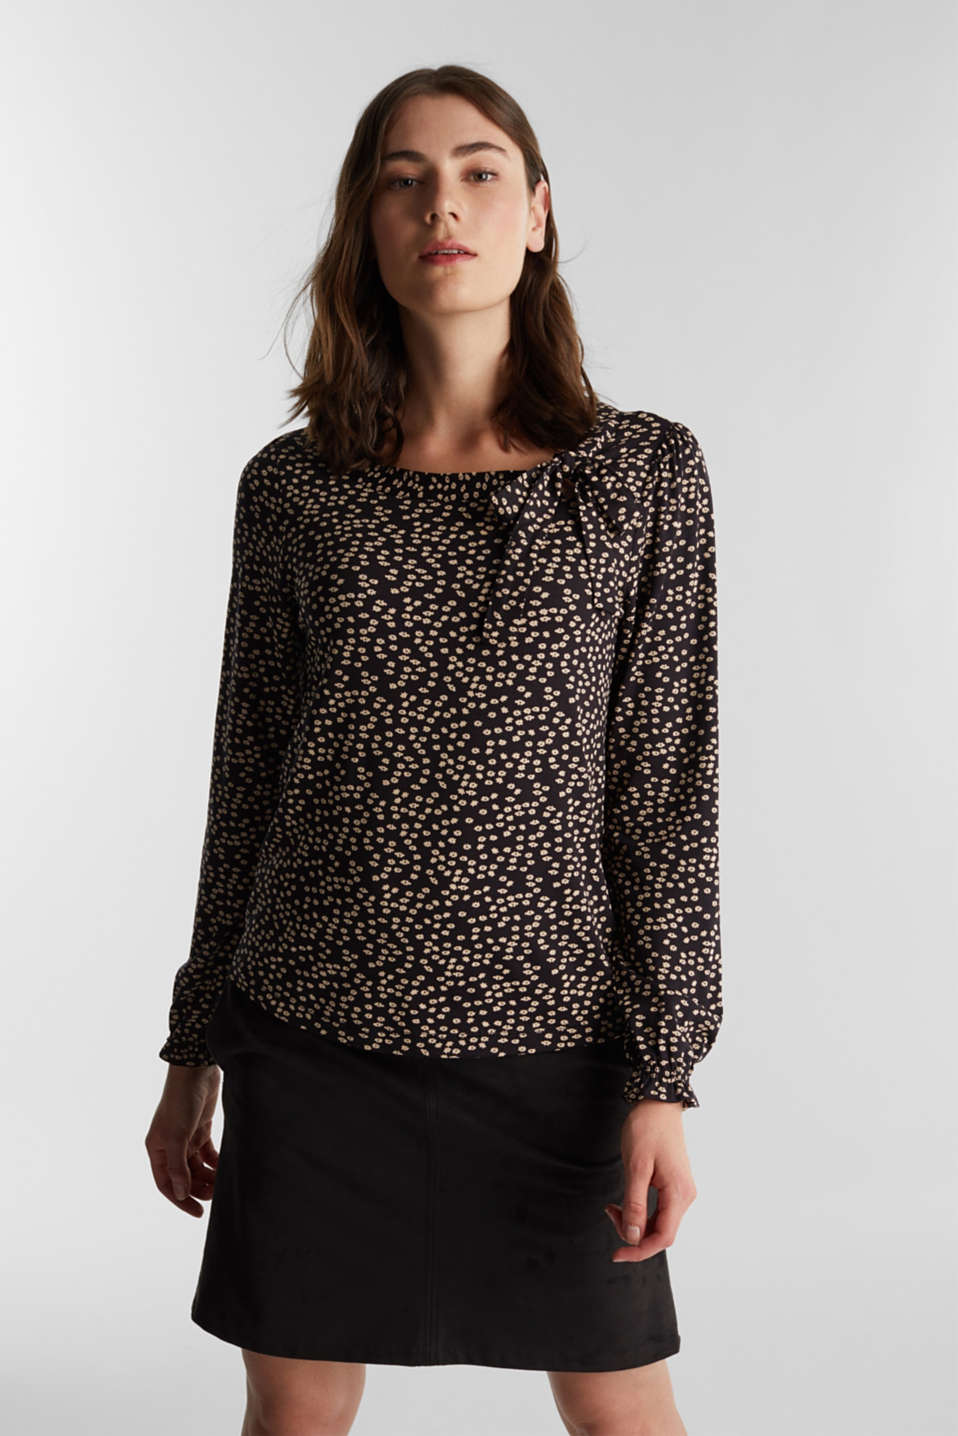 Esprit - Long sleeve top with a bow detail